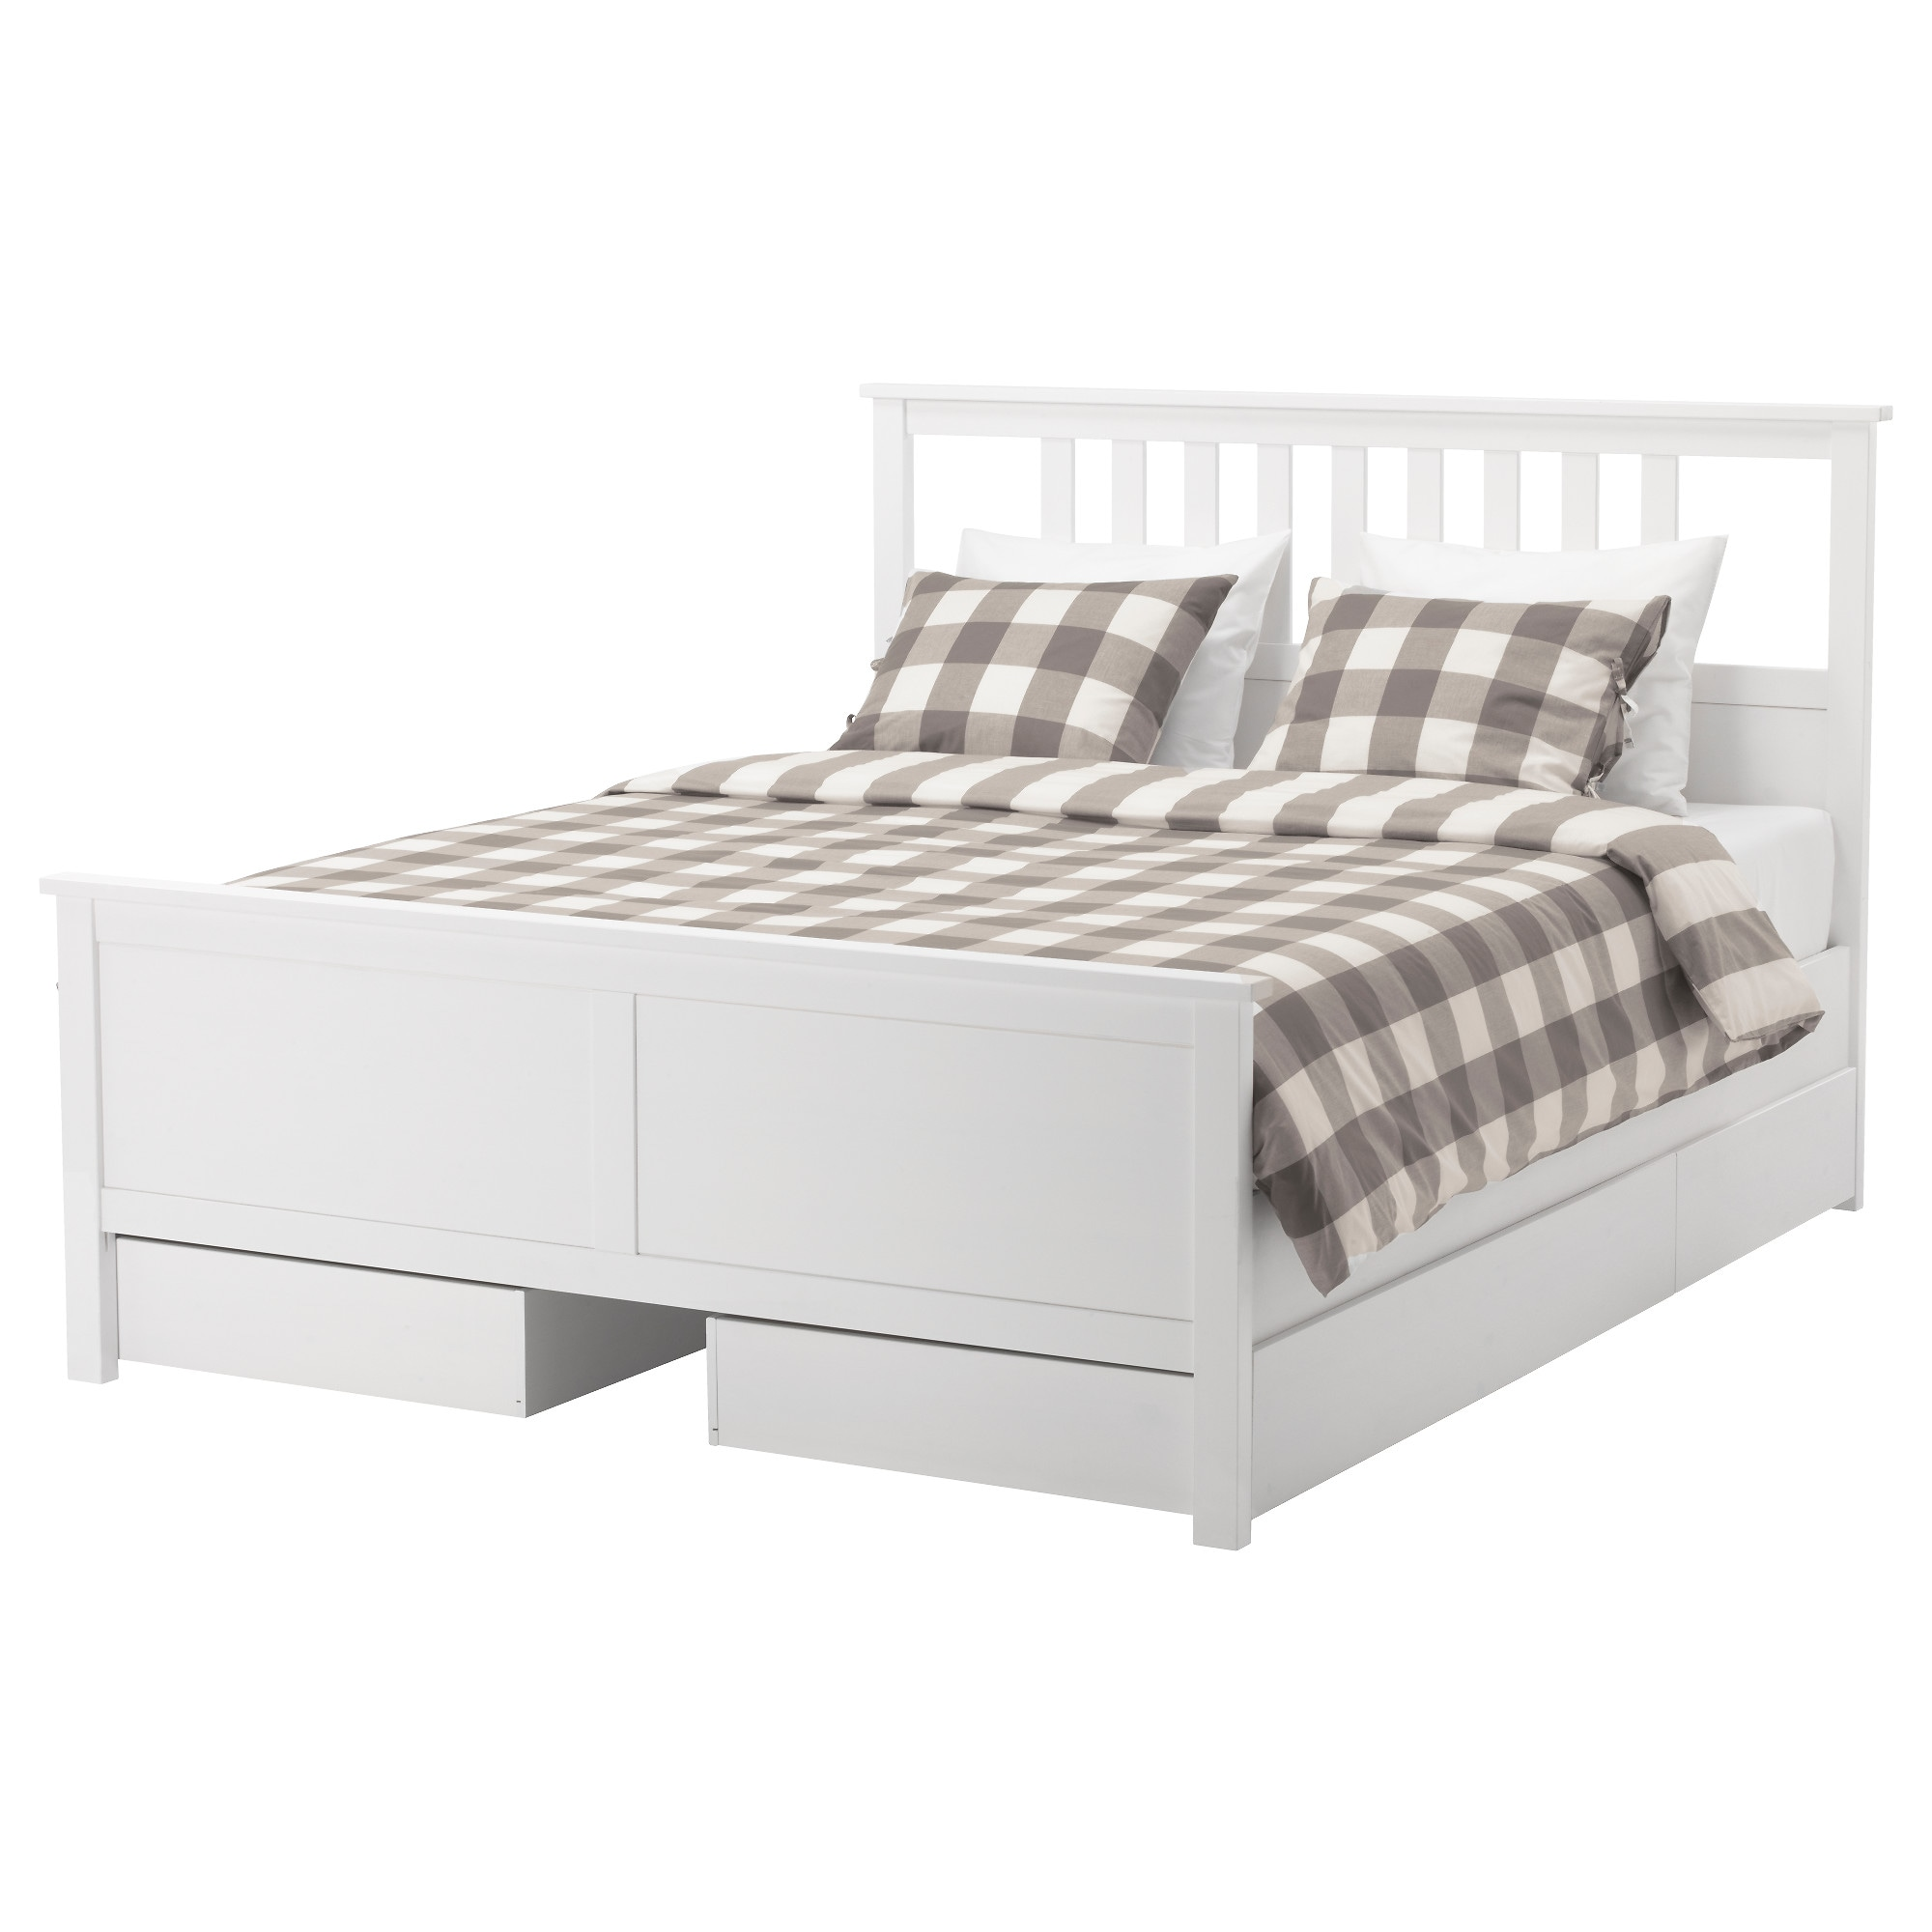 Uncategorized Bed Frames From Ikea full queen king beds frames ikea hemnes bed frame with 4 storage boxes white stain length 83 7